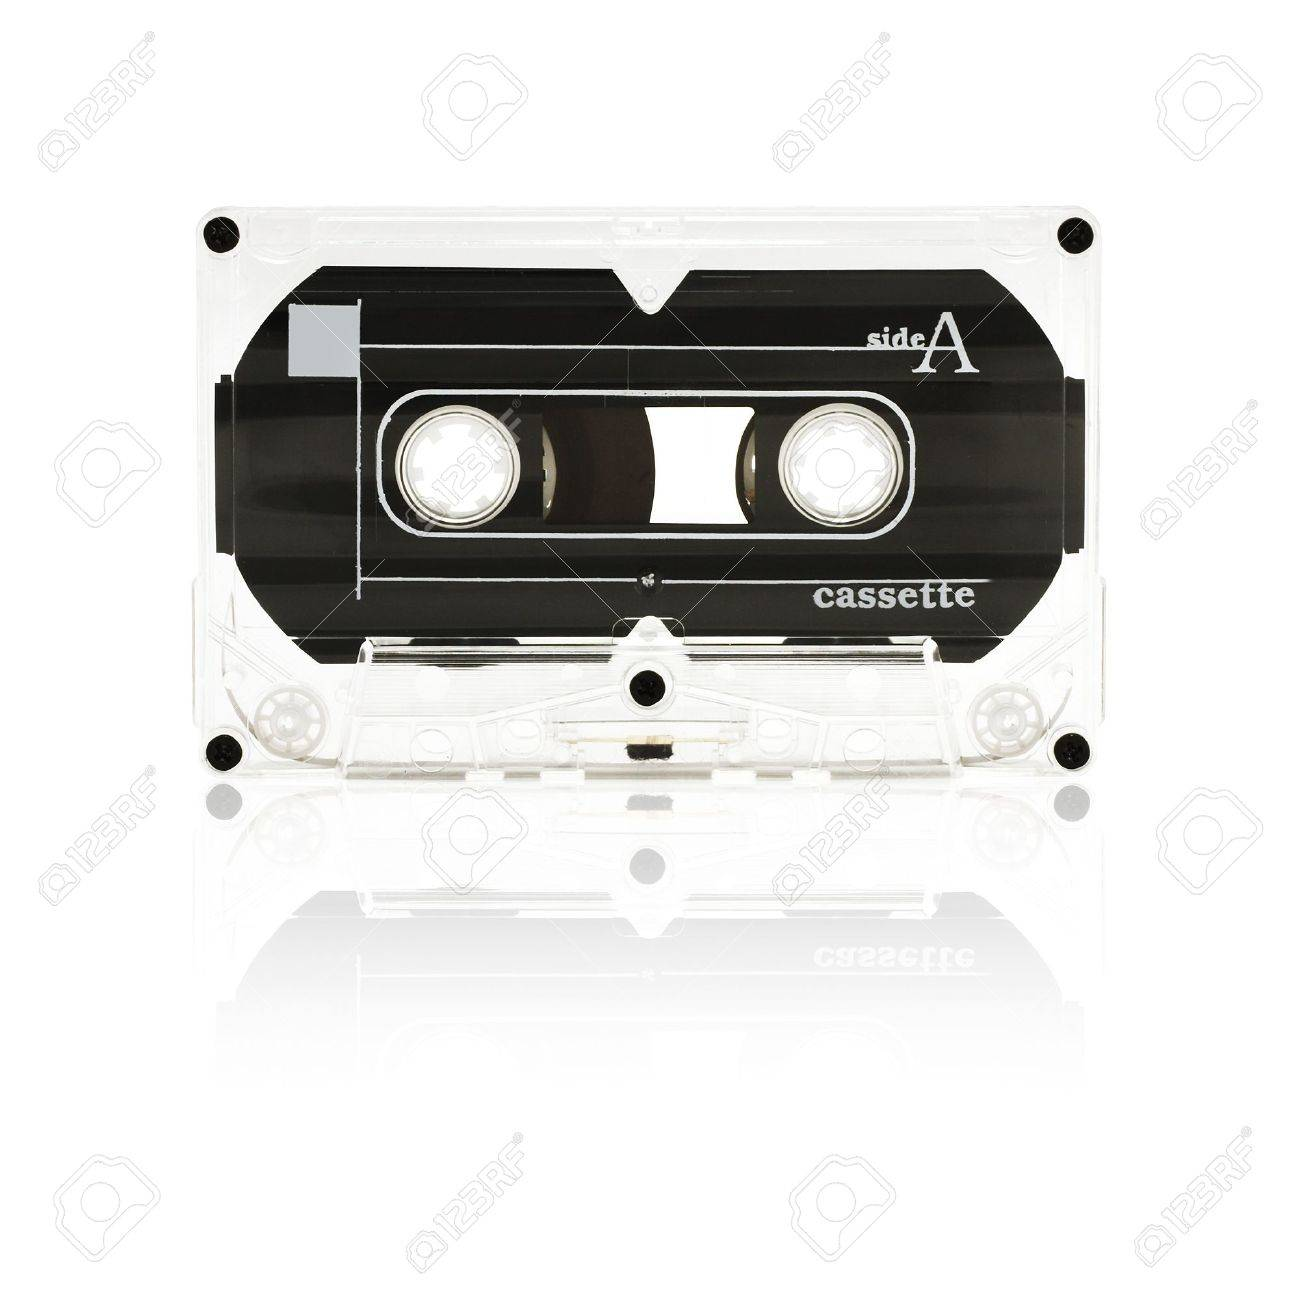 old audio tape cassette - side a - 966705